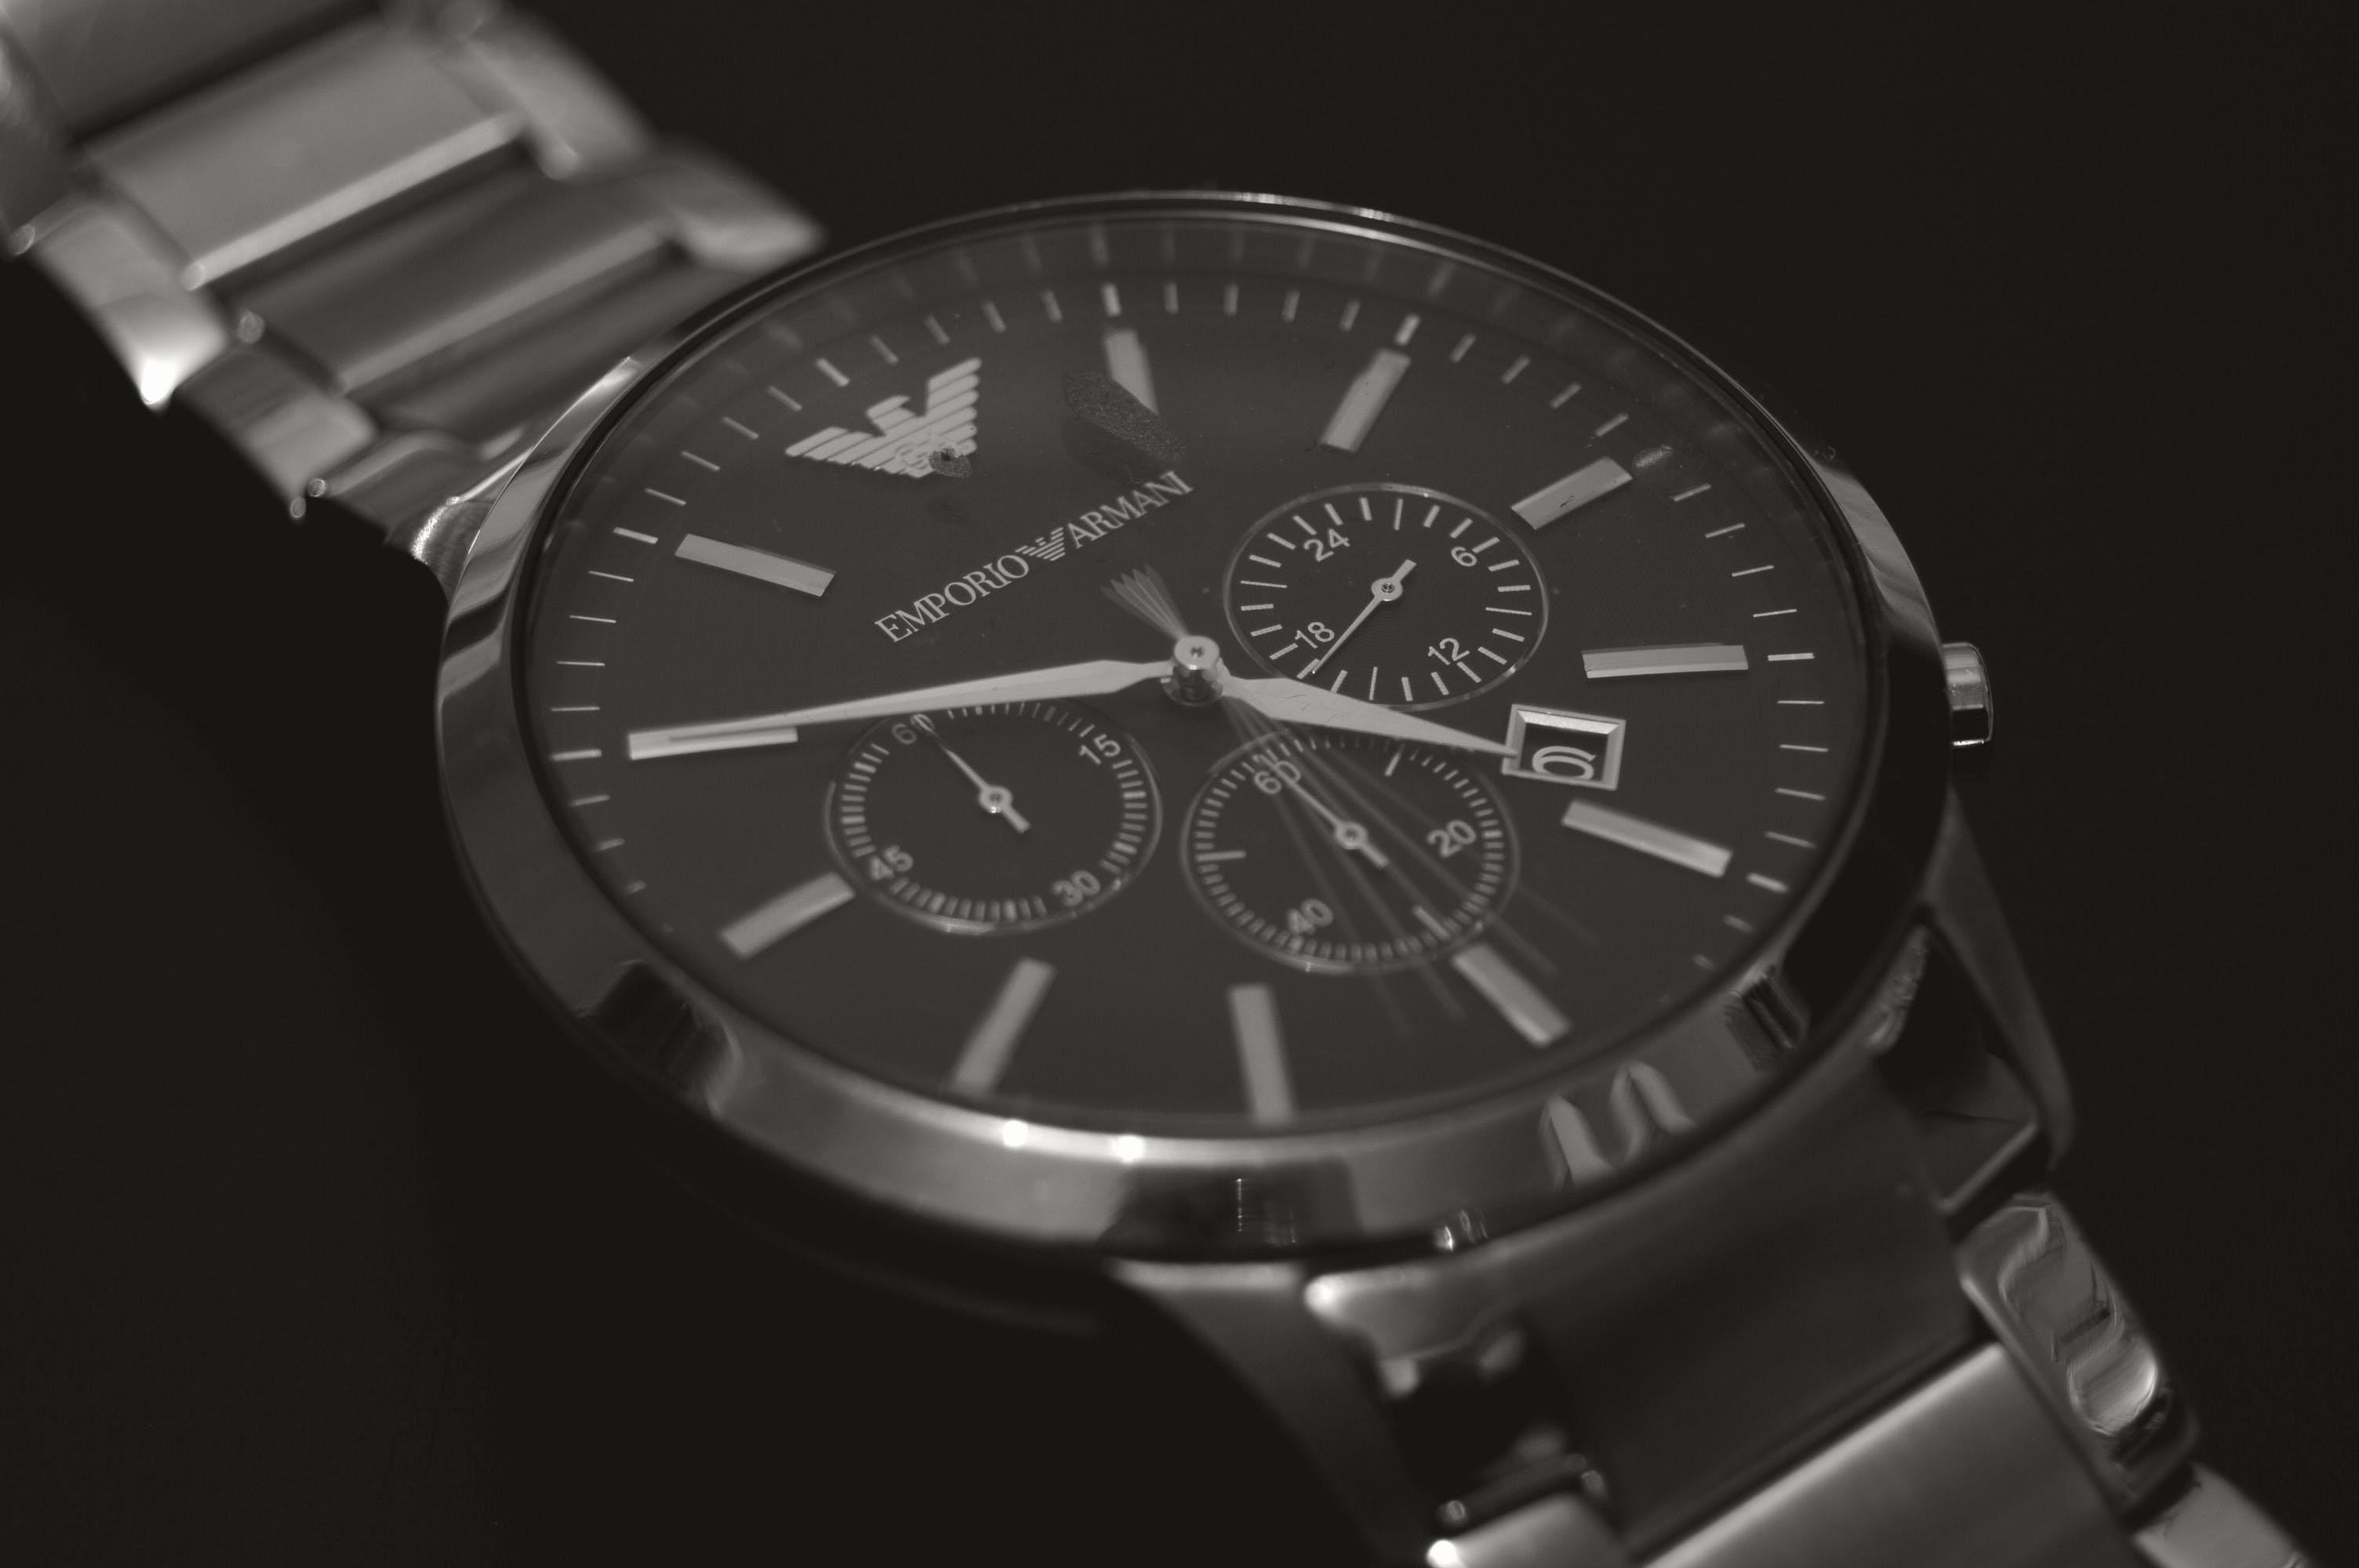 Round Silver-colored Emporio Armani Chronograph Watch